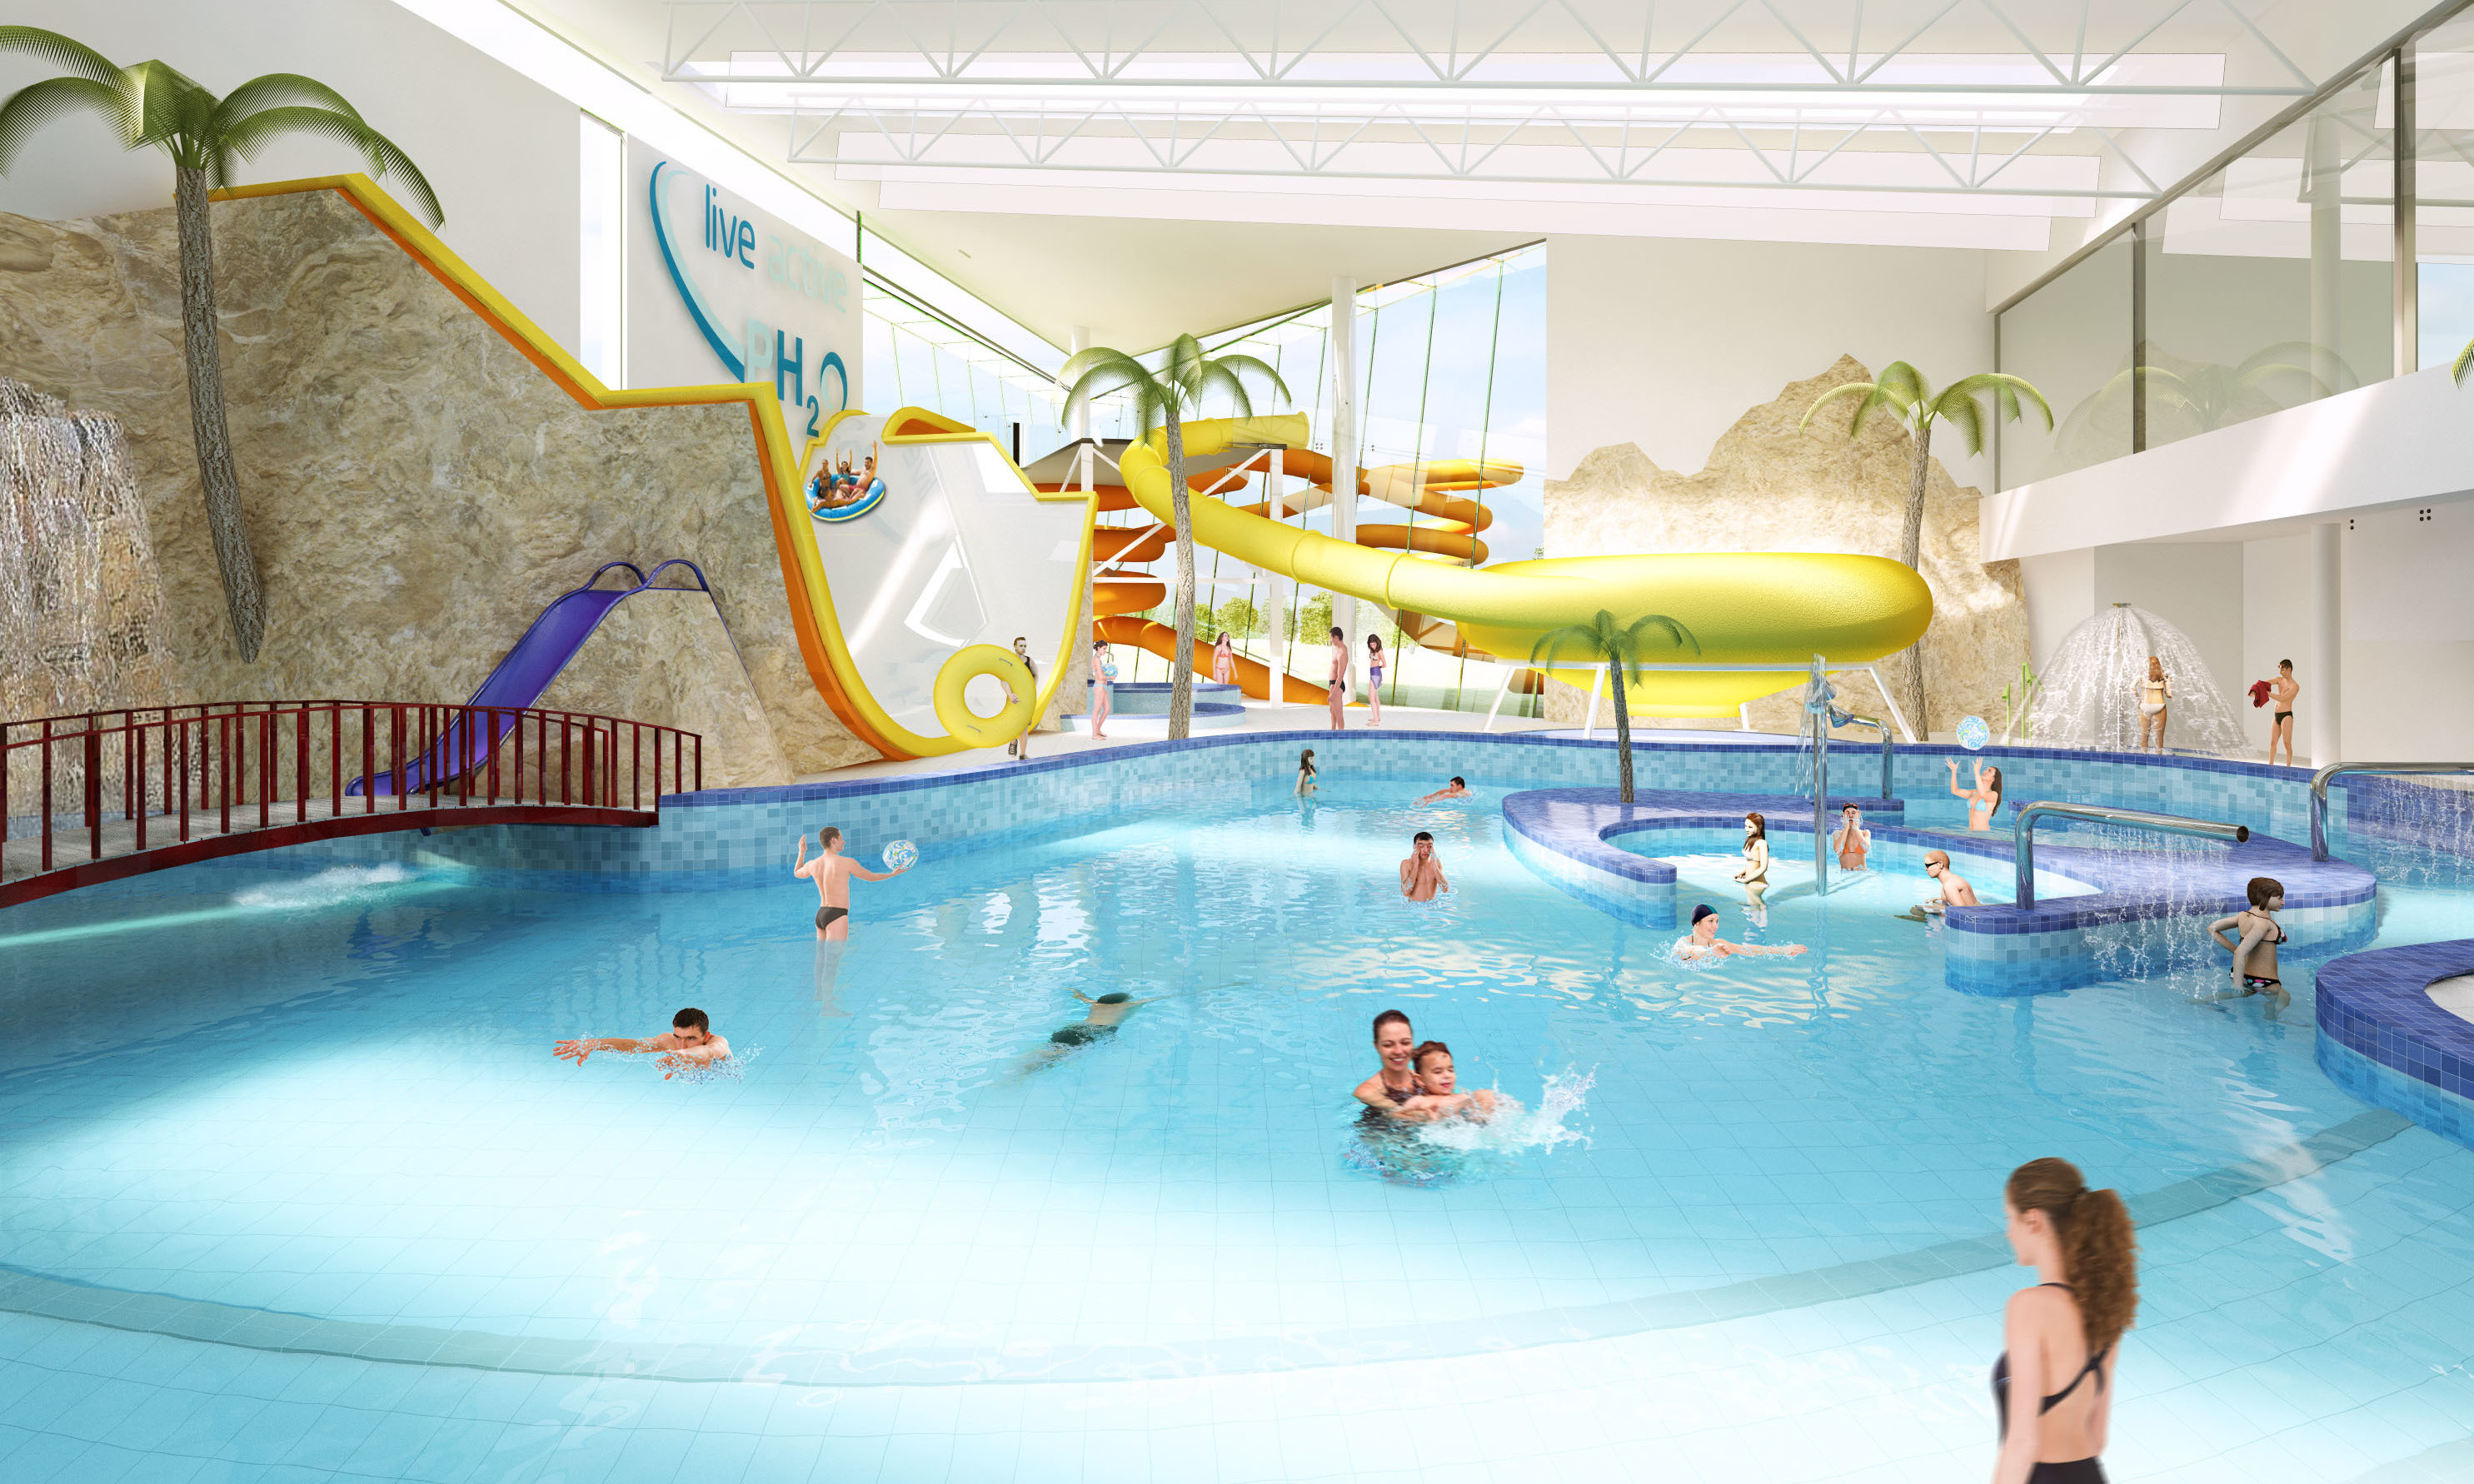 An artist's impression of the new look Perth pool, as part of the ambitious PH20 project.